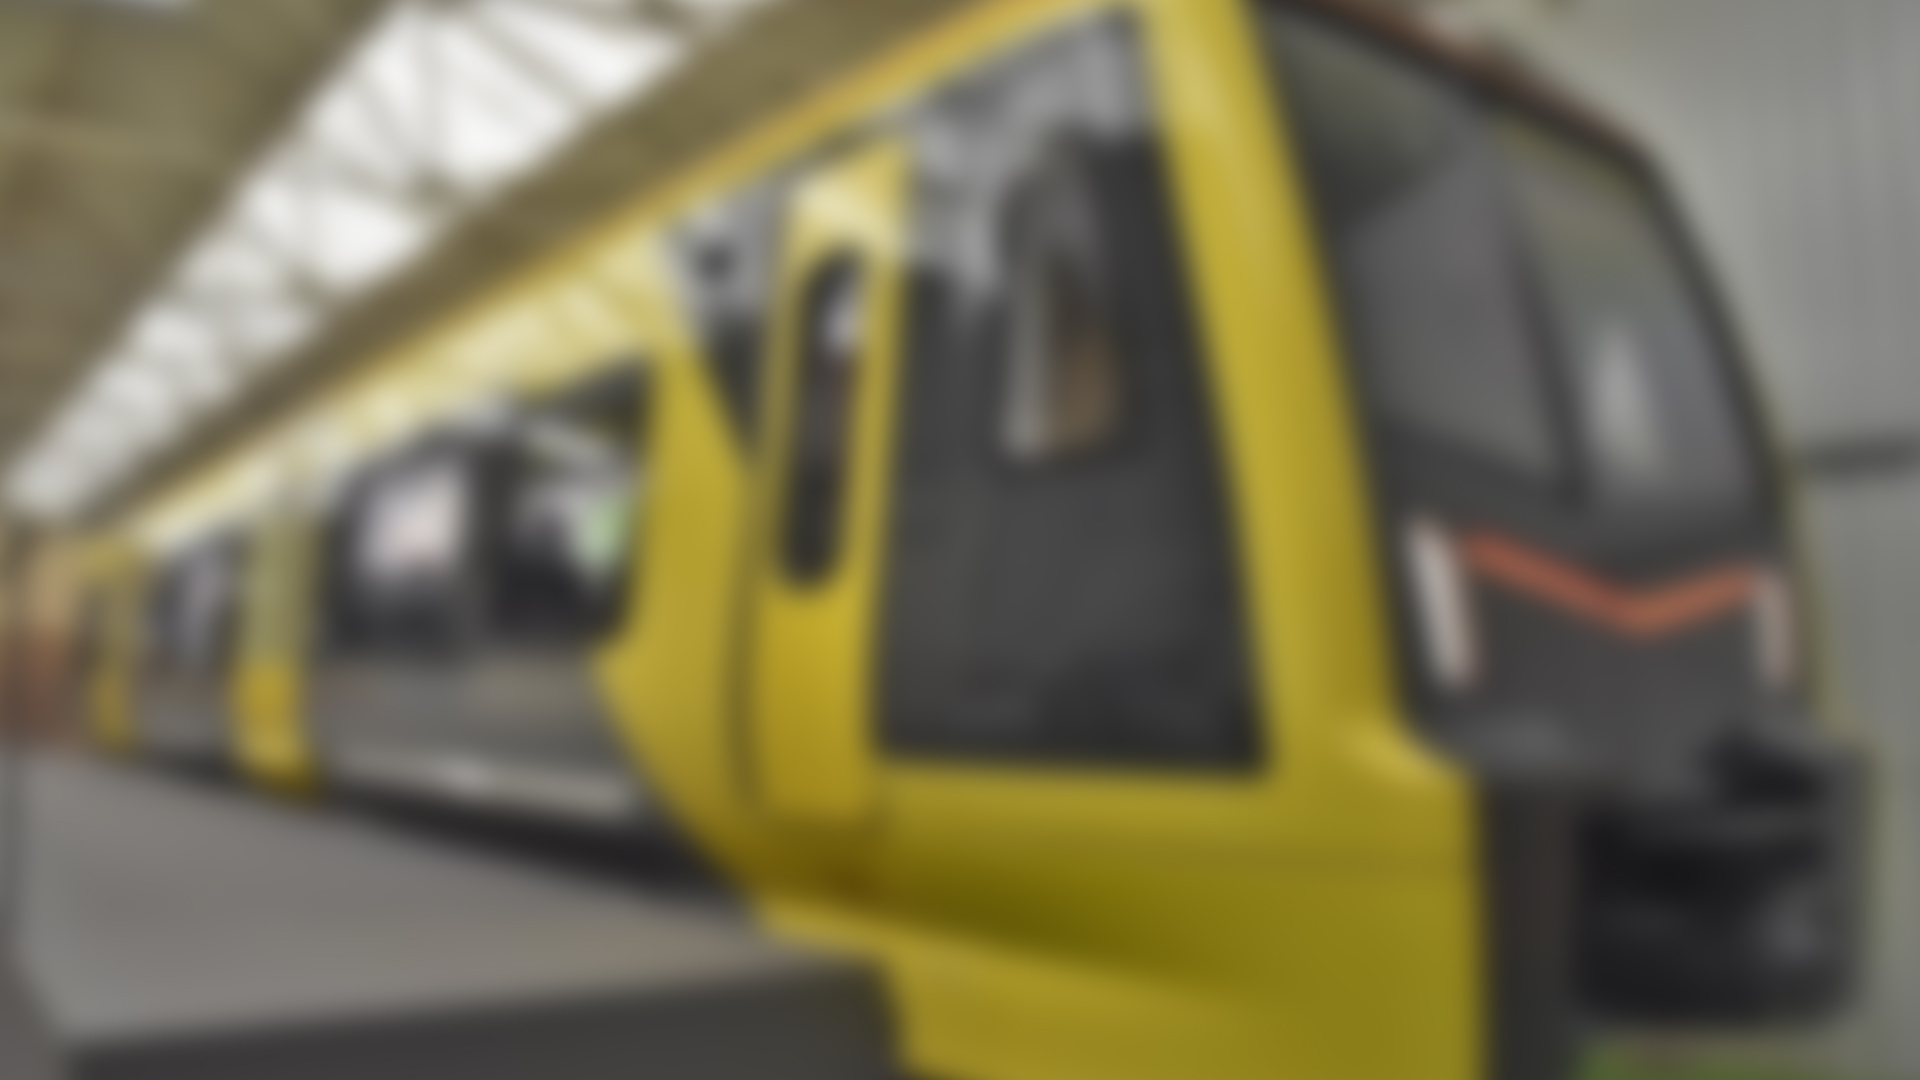 Get a first look: full-size replica of new Merseyrail trains on public display